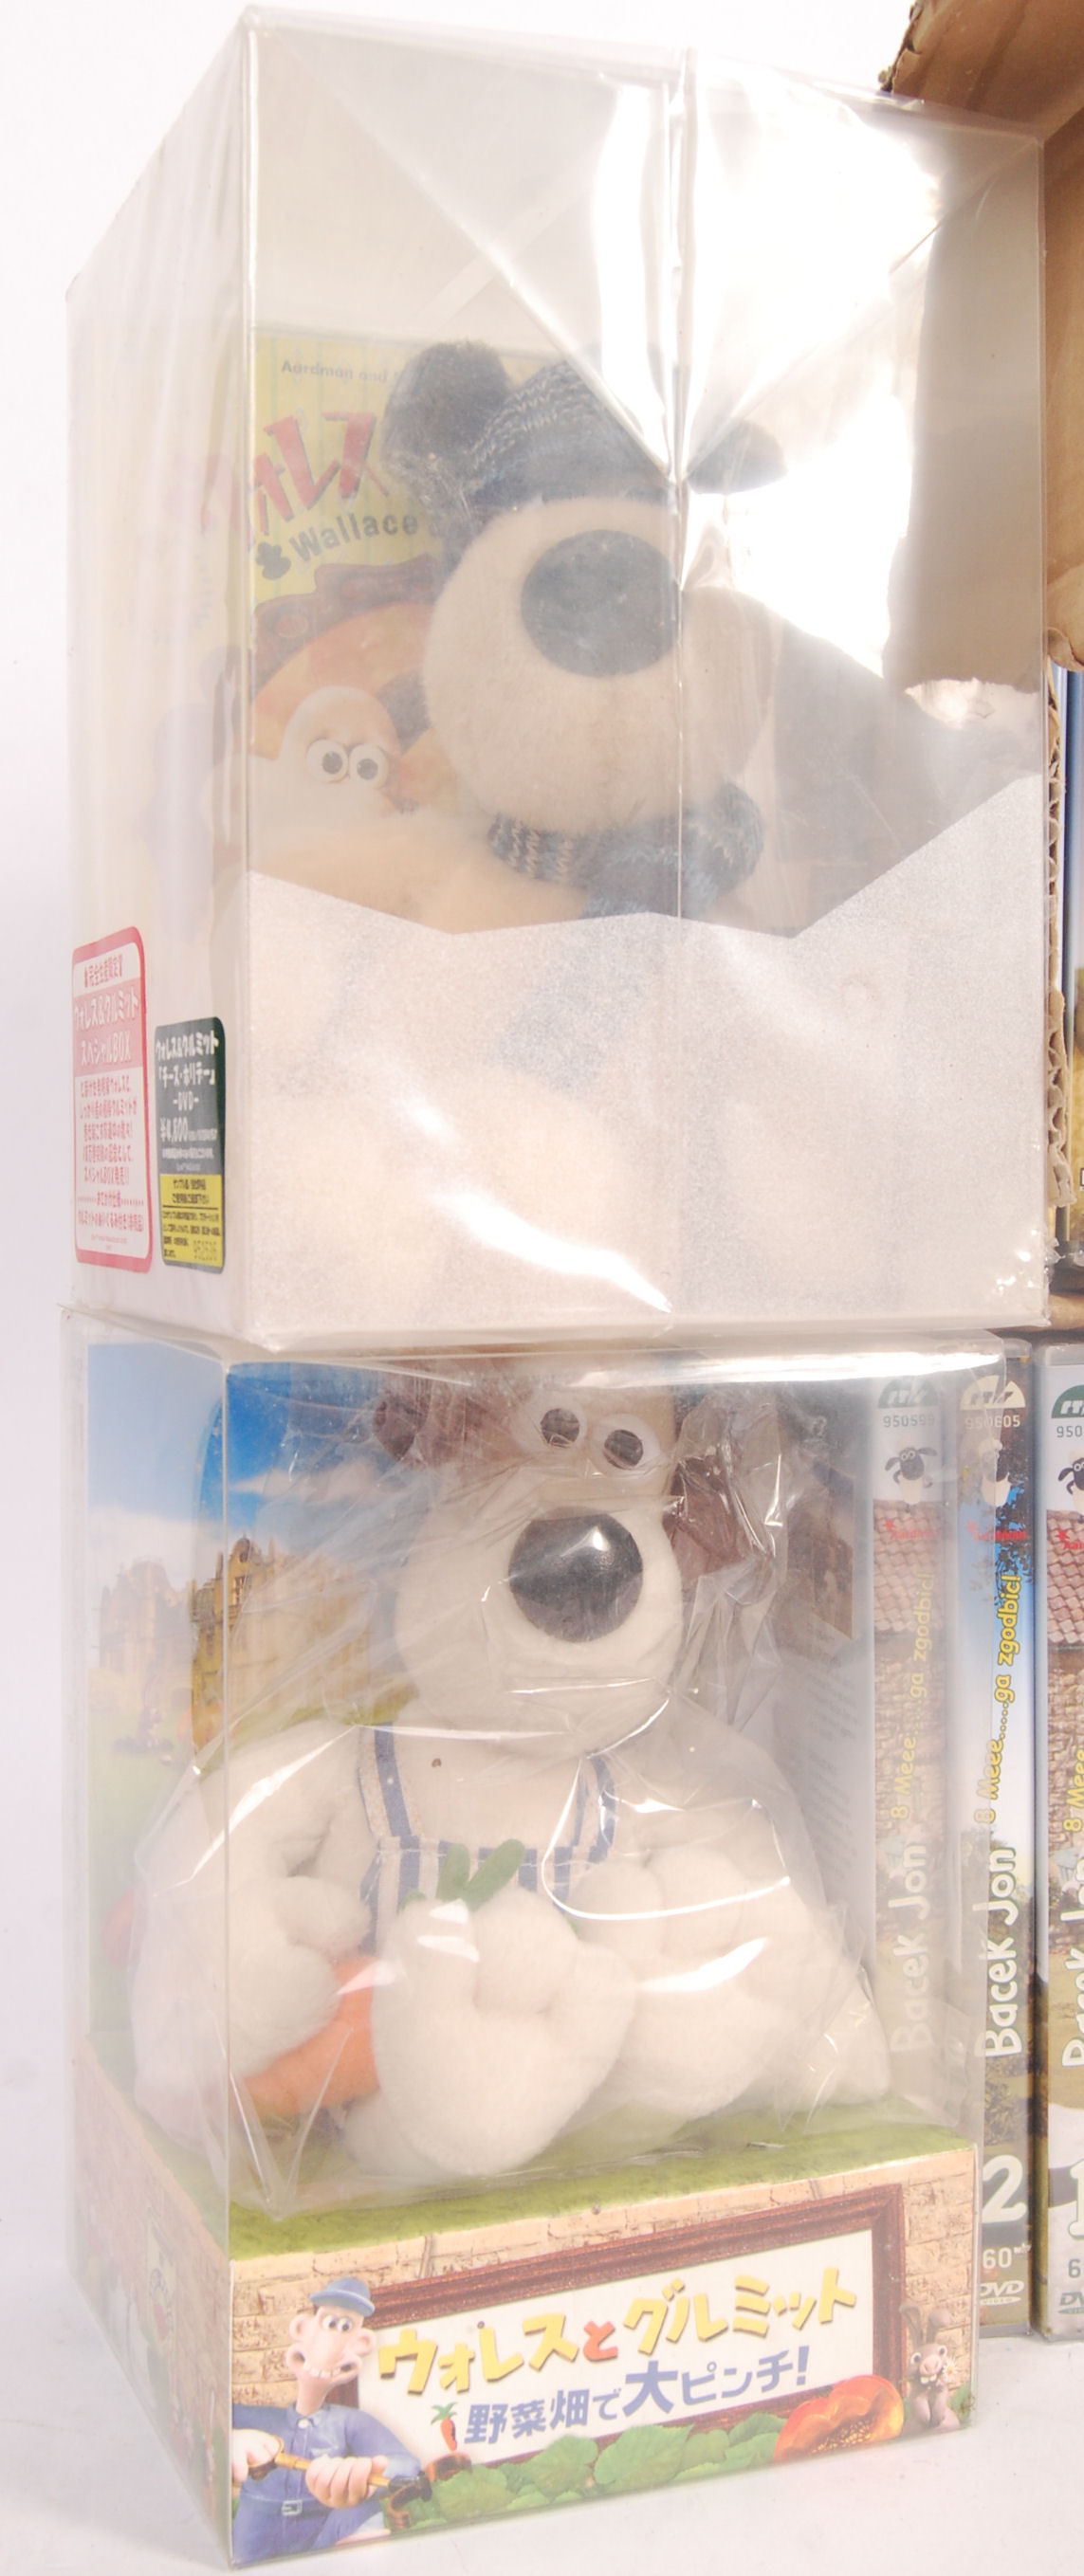 Lot 162 - AARDMAN ANIMATION SHAUN THE SHEEP DVD'S AND CD'S